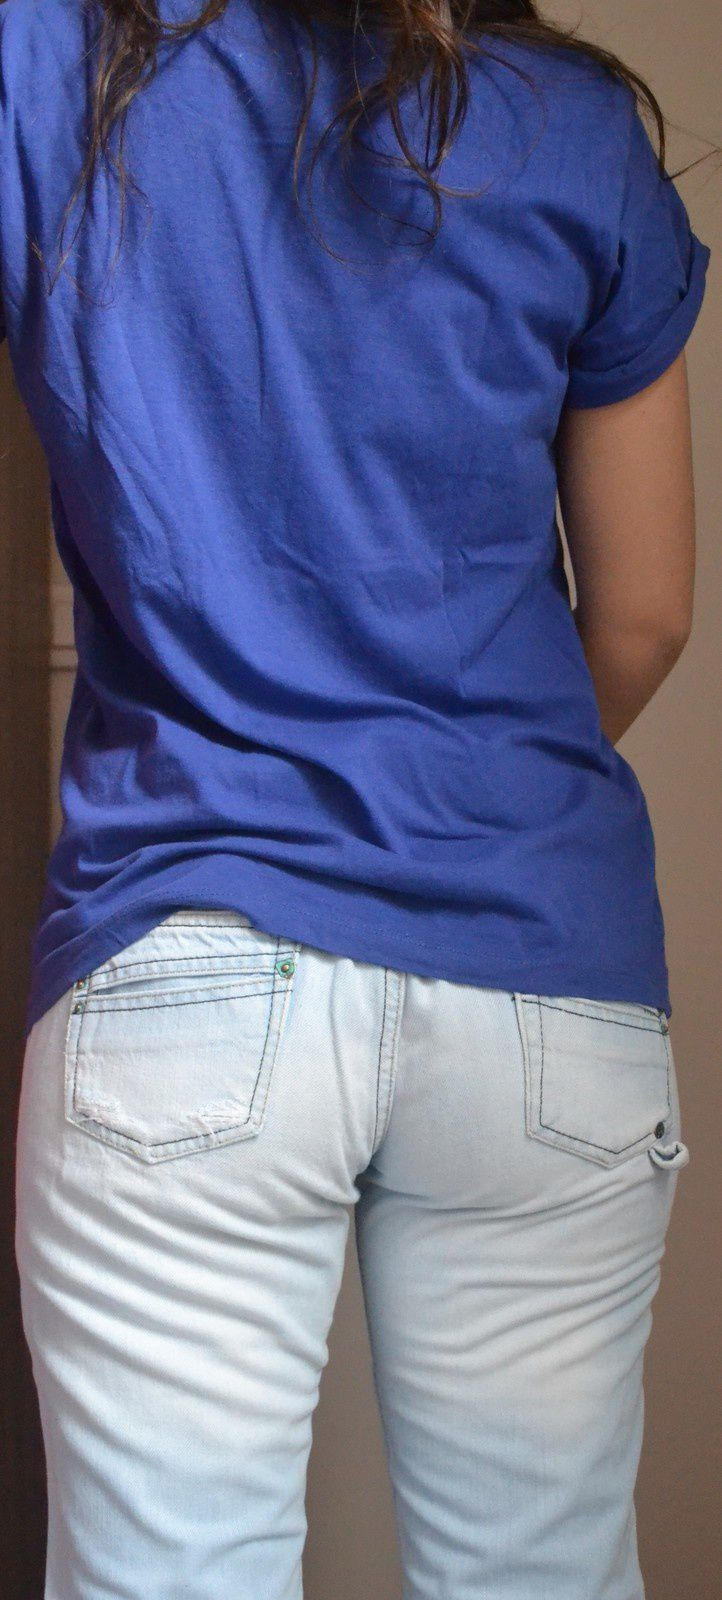 Jeans Pimkie taill 38: 10€      T-shirt bershka taille M : 7€